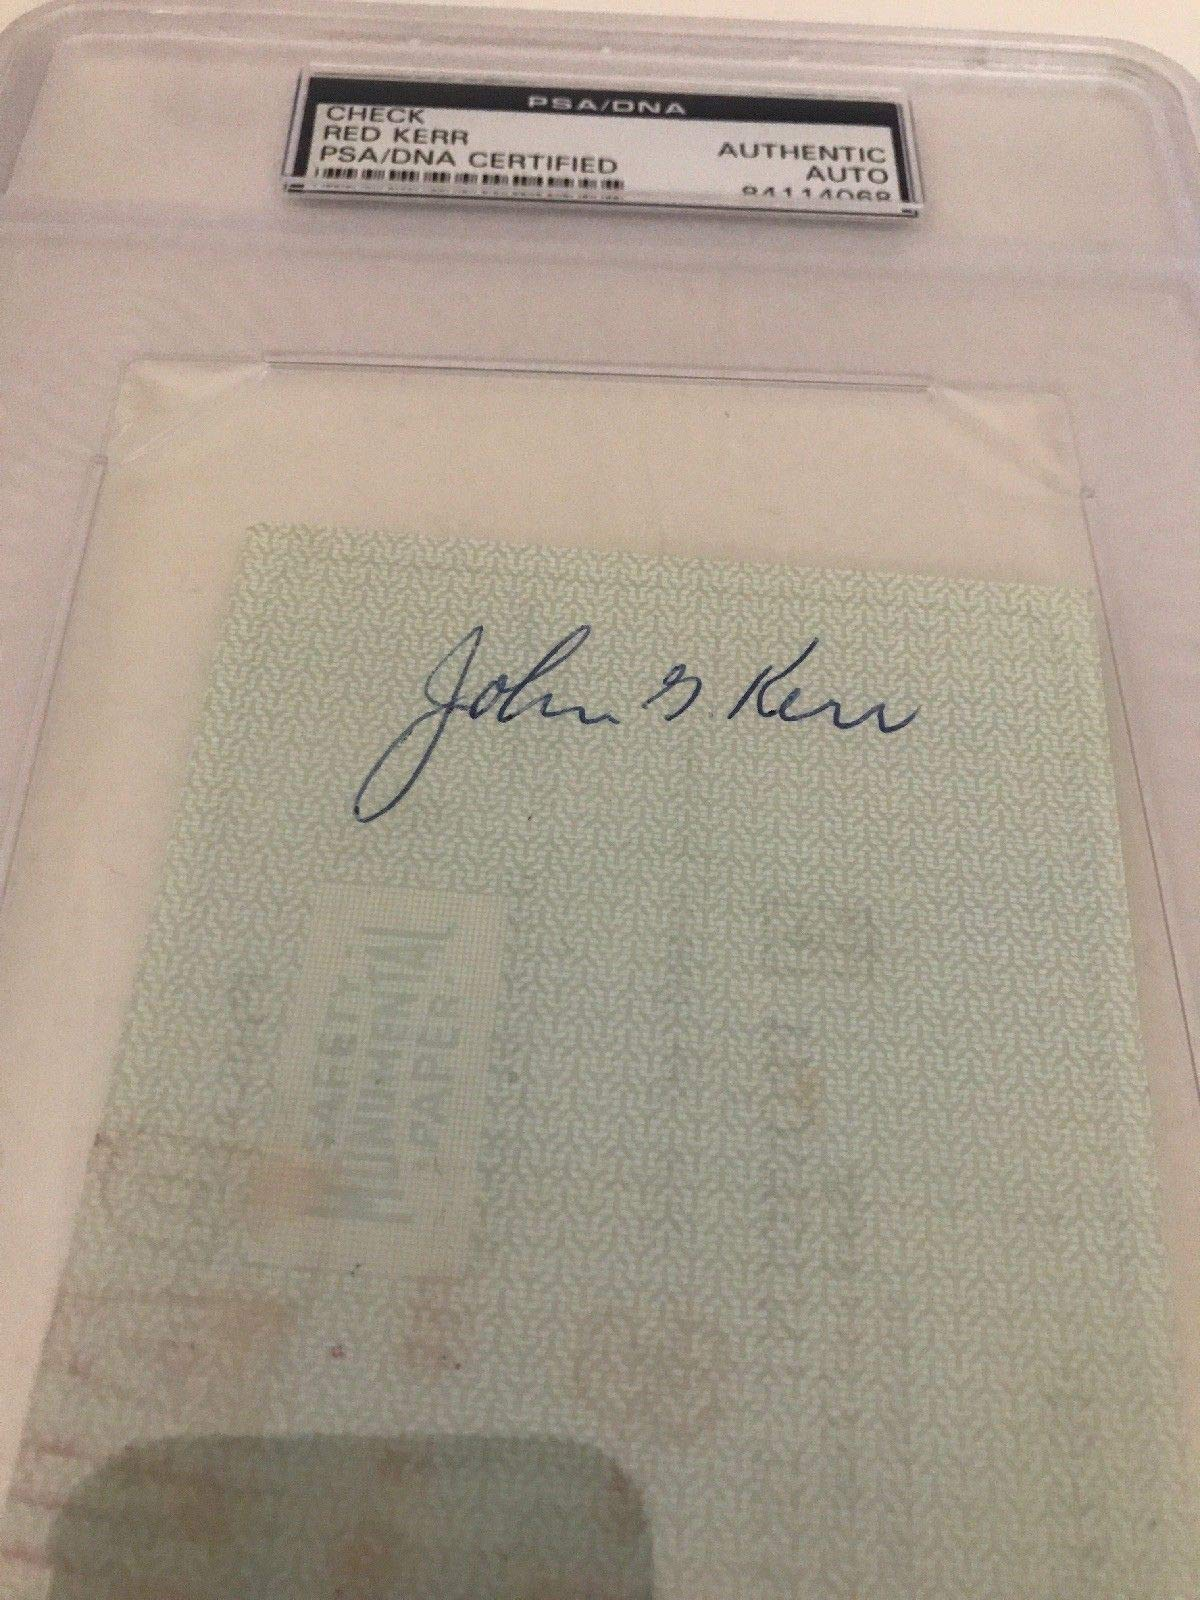 John Kerr Autographed Signed 1965 Philadelphia 76Ers Payroll Check PSA/DNA Authentic Encapsulated